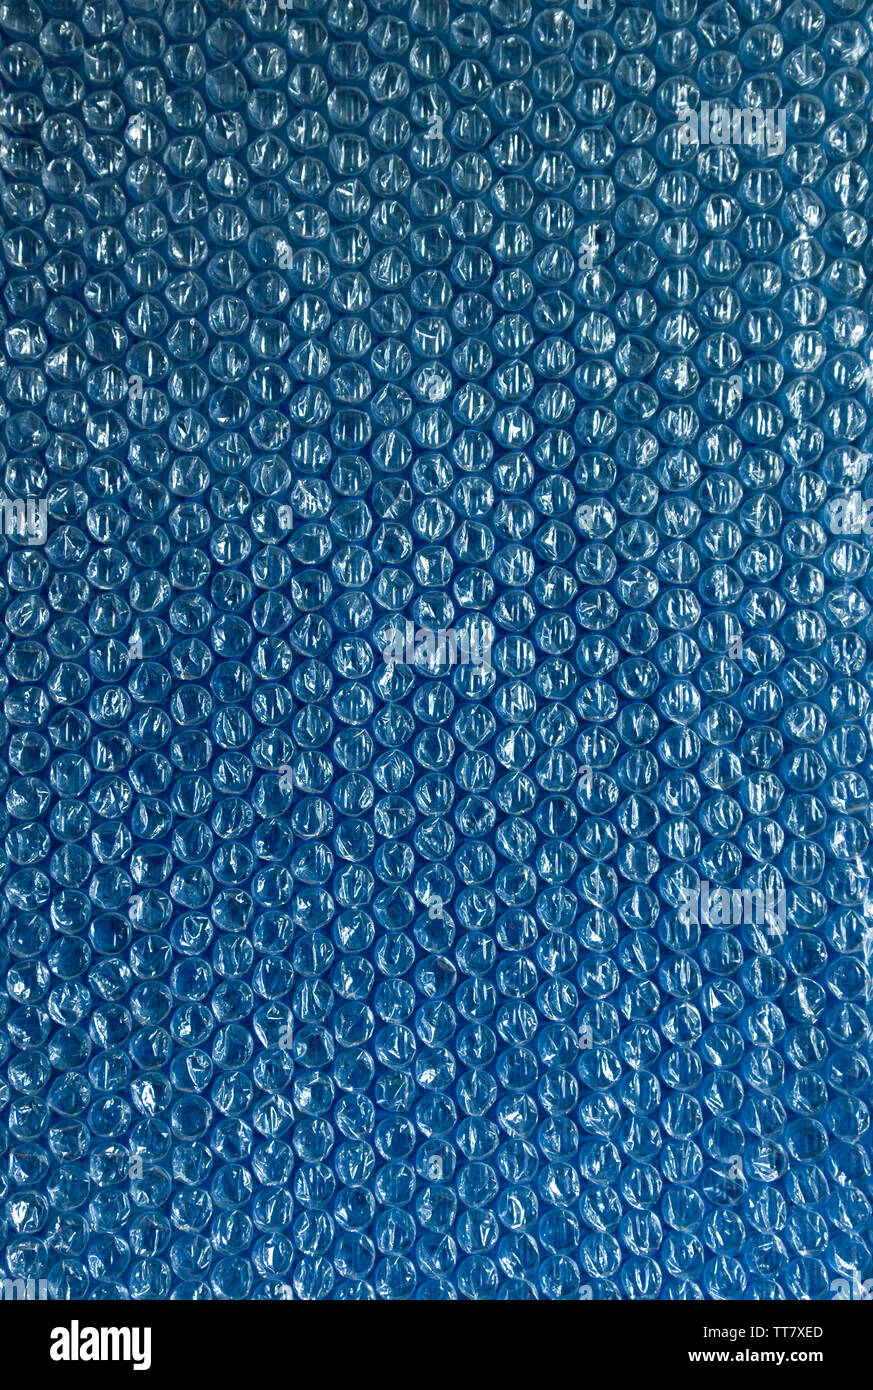 Cellophane and plastic background. The texture of old plastic's packing with balls. Image blue and white tones. - Stock Image